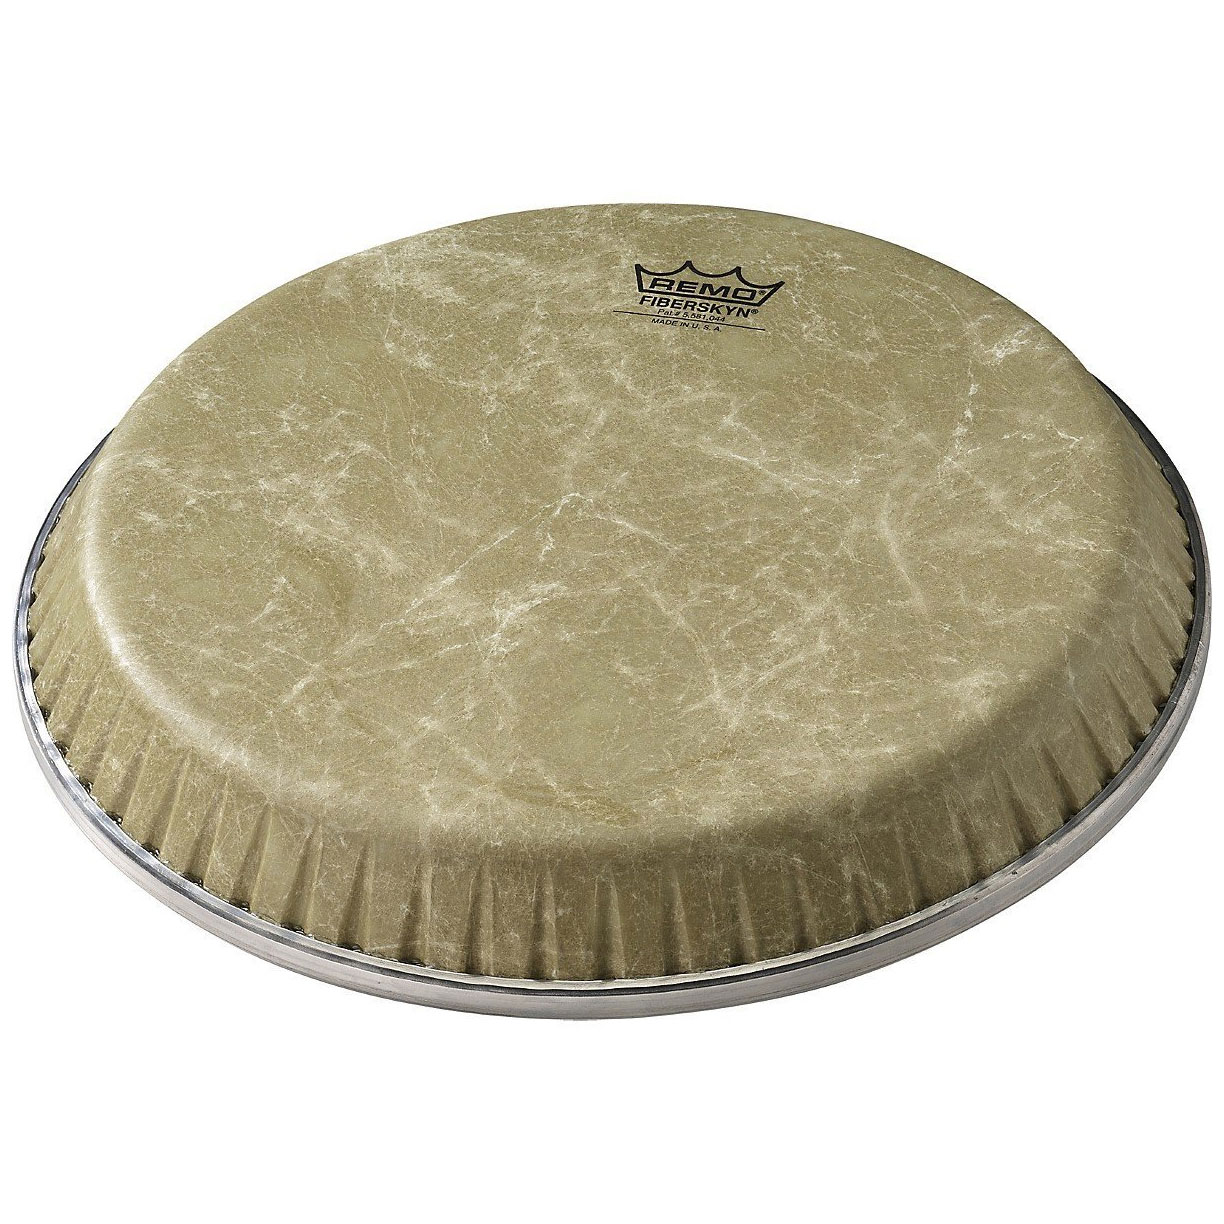 "Remo 11.75"" Symmetry Fiberskyn Conga Drum Head (D1 Collar)"